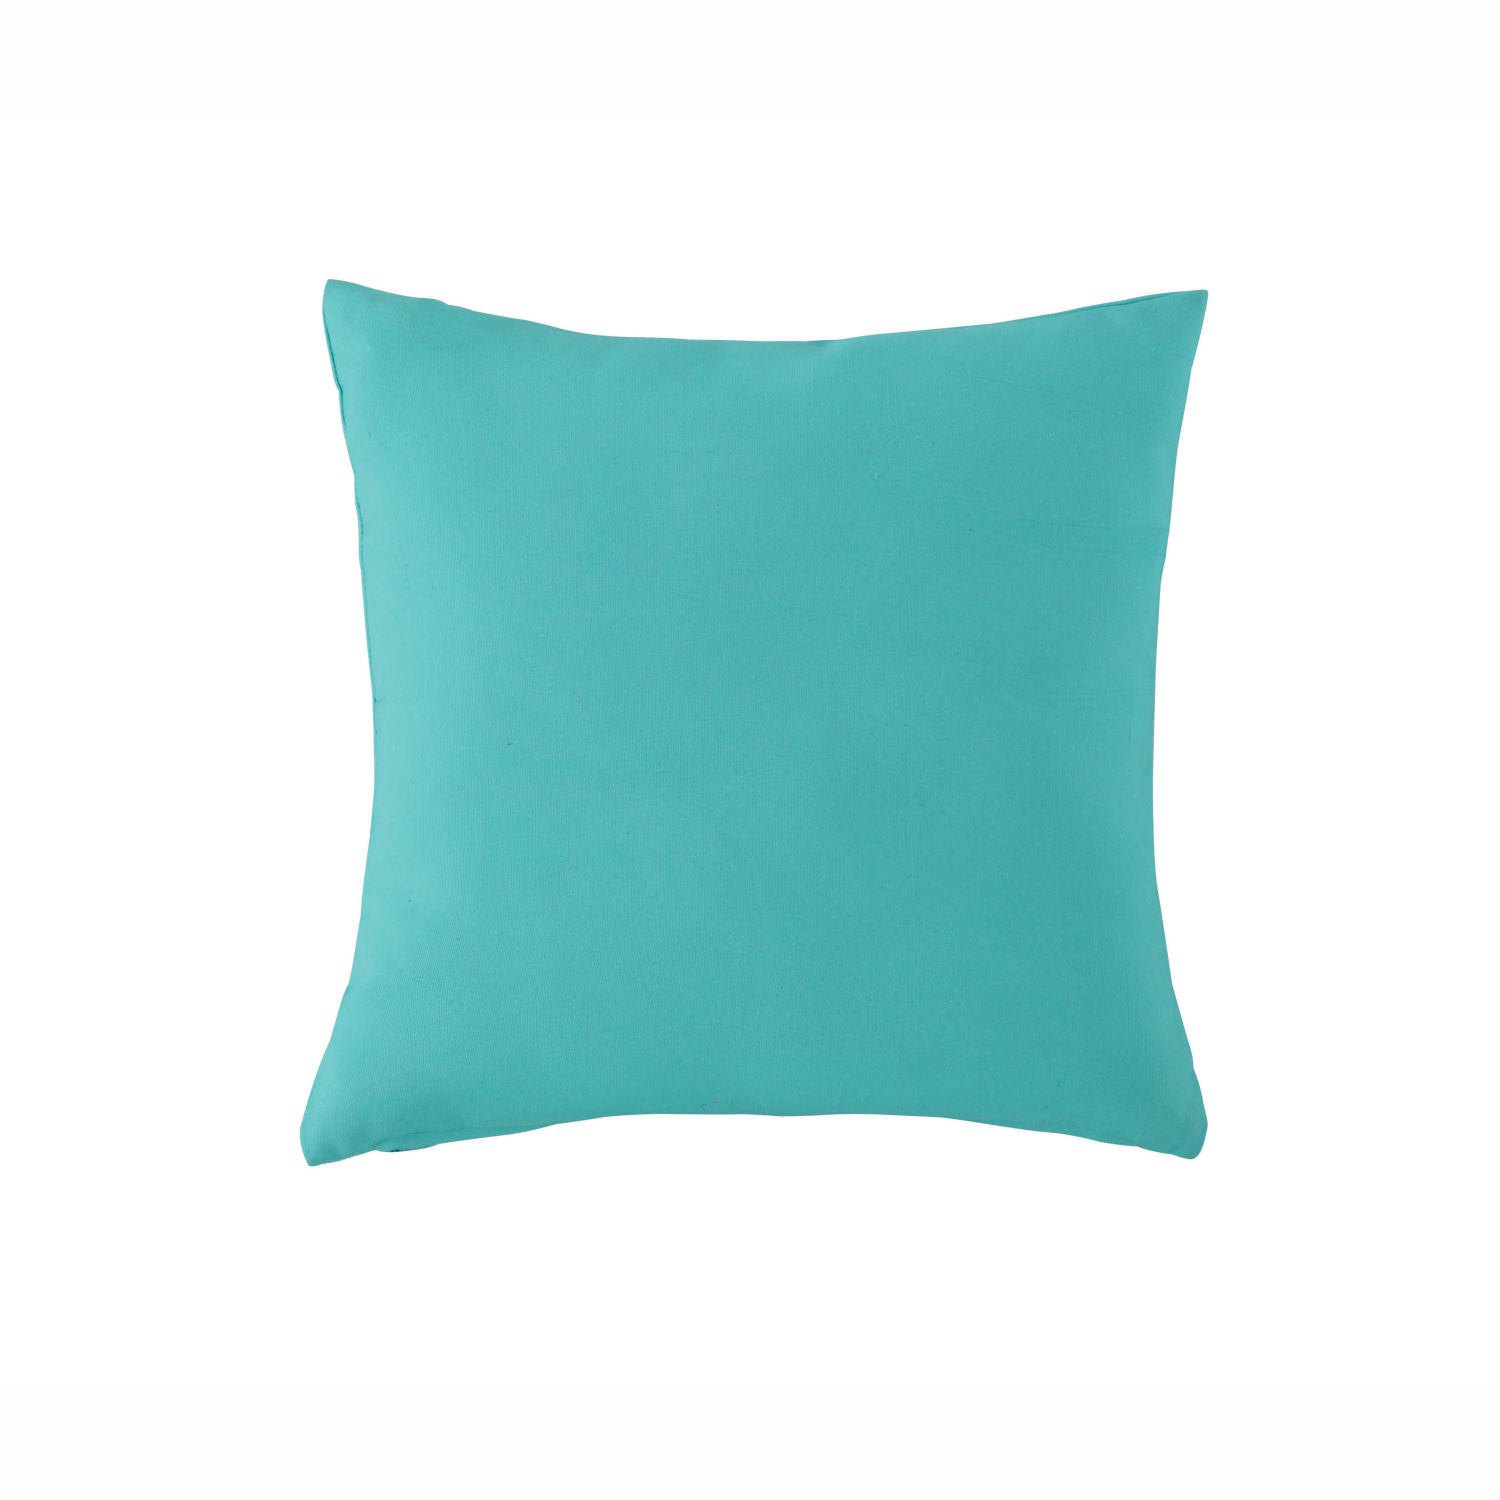 coussin d 39 ext rieur bleu turquoise 40x40 maisons du monde. Black Bedroom Furniture Sets. Home Design Ideas